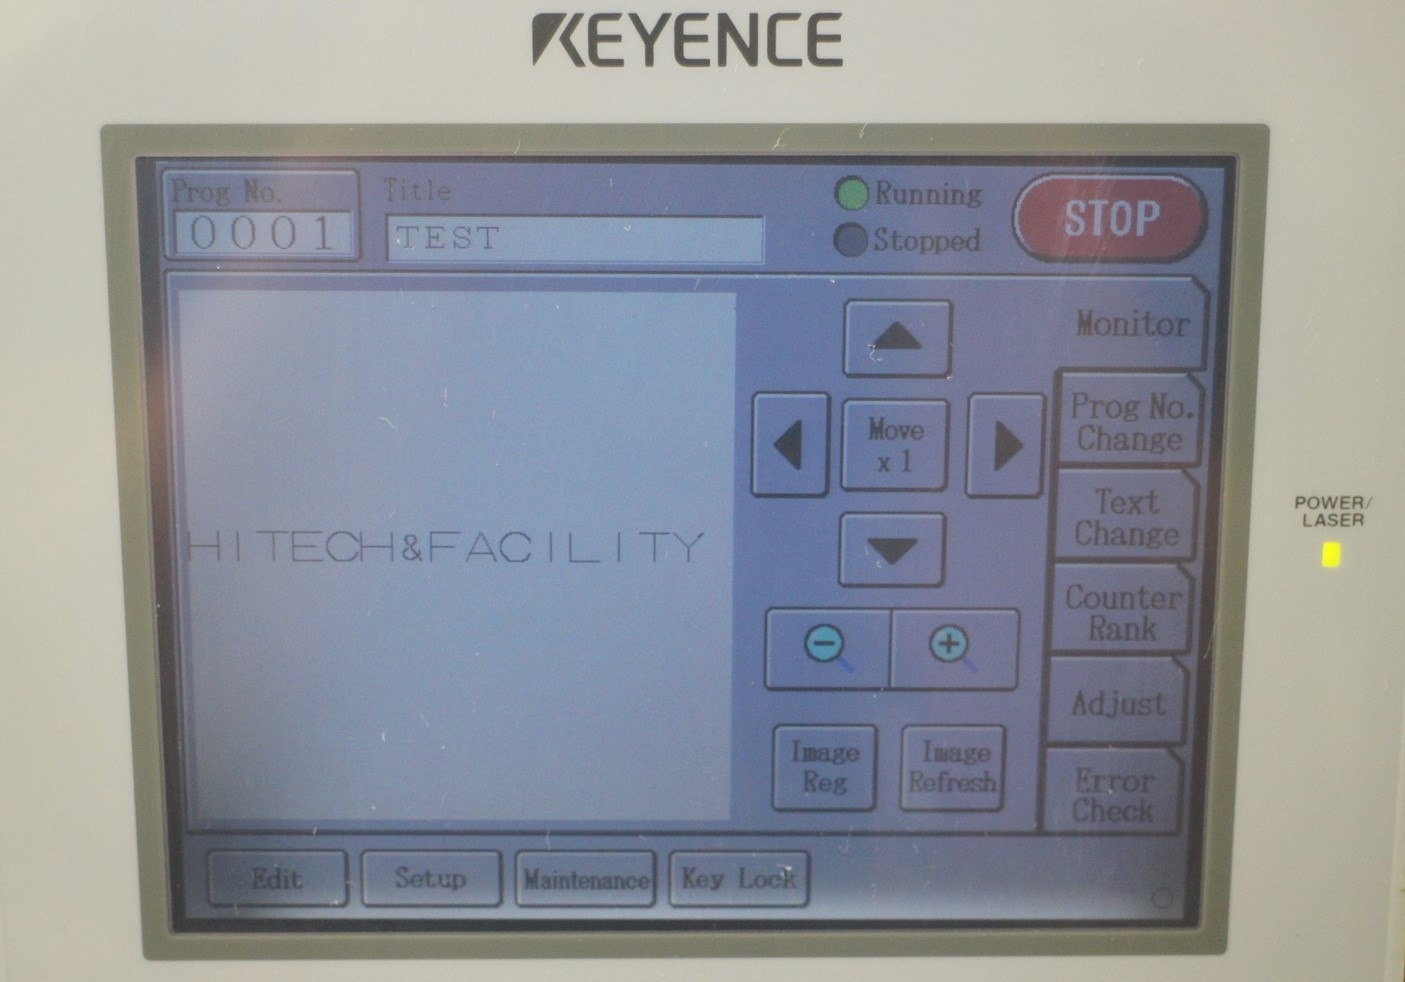 Details about Keyence ML-G9300+9310 High Speed, High power CO2 Laser Marker